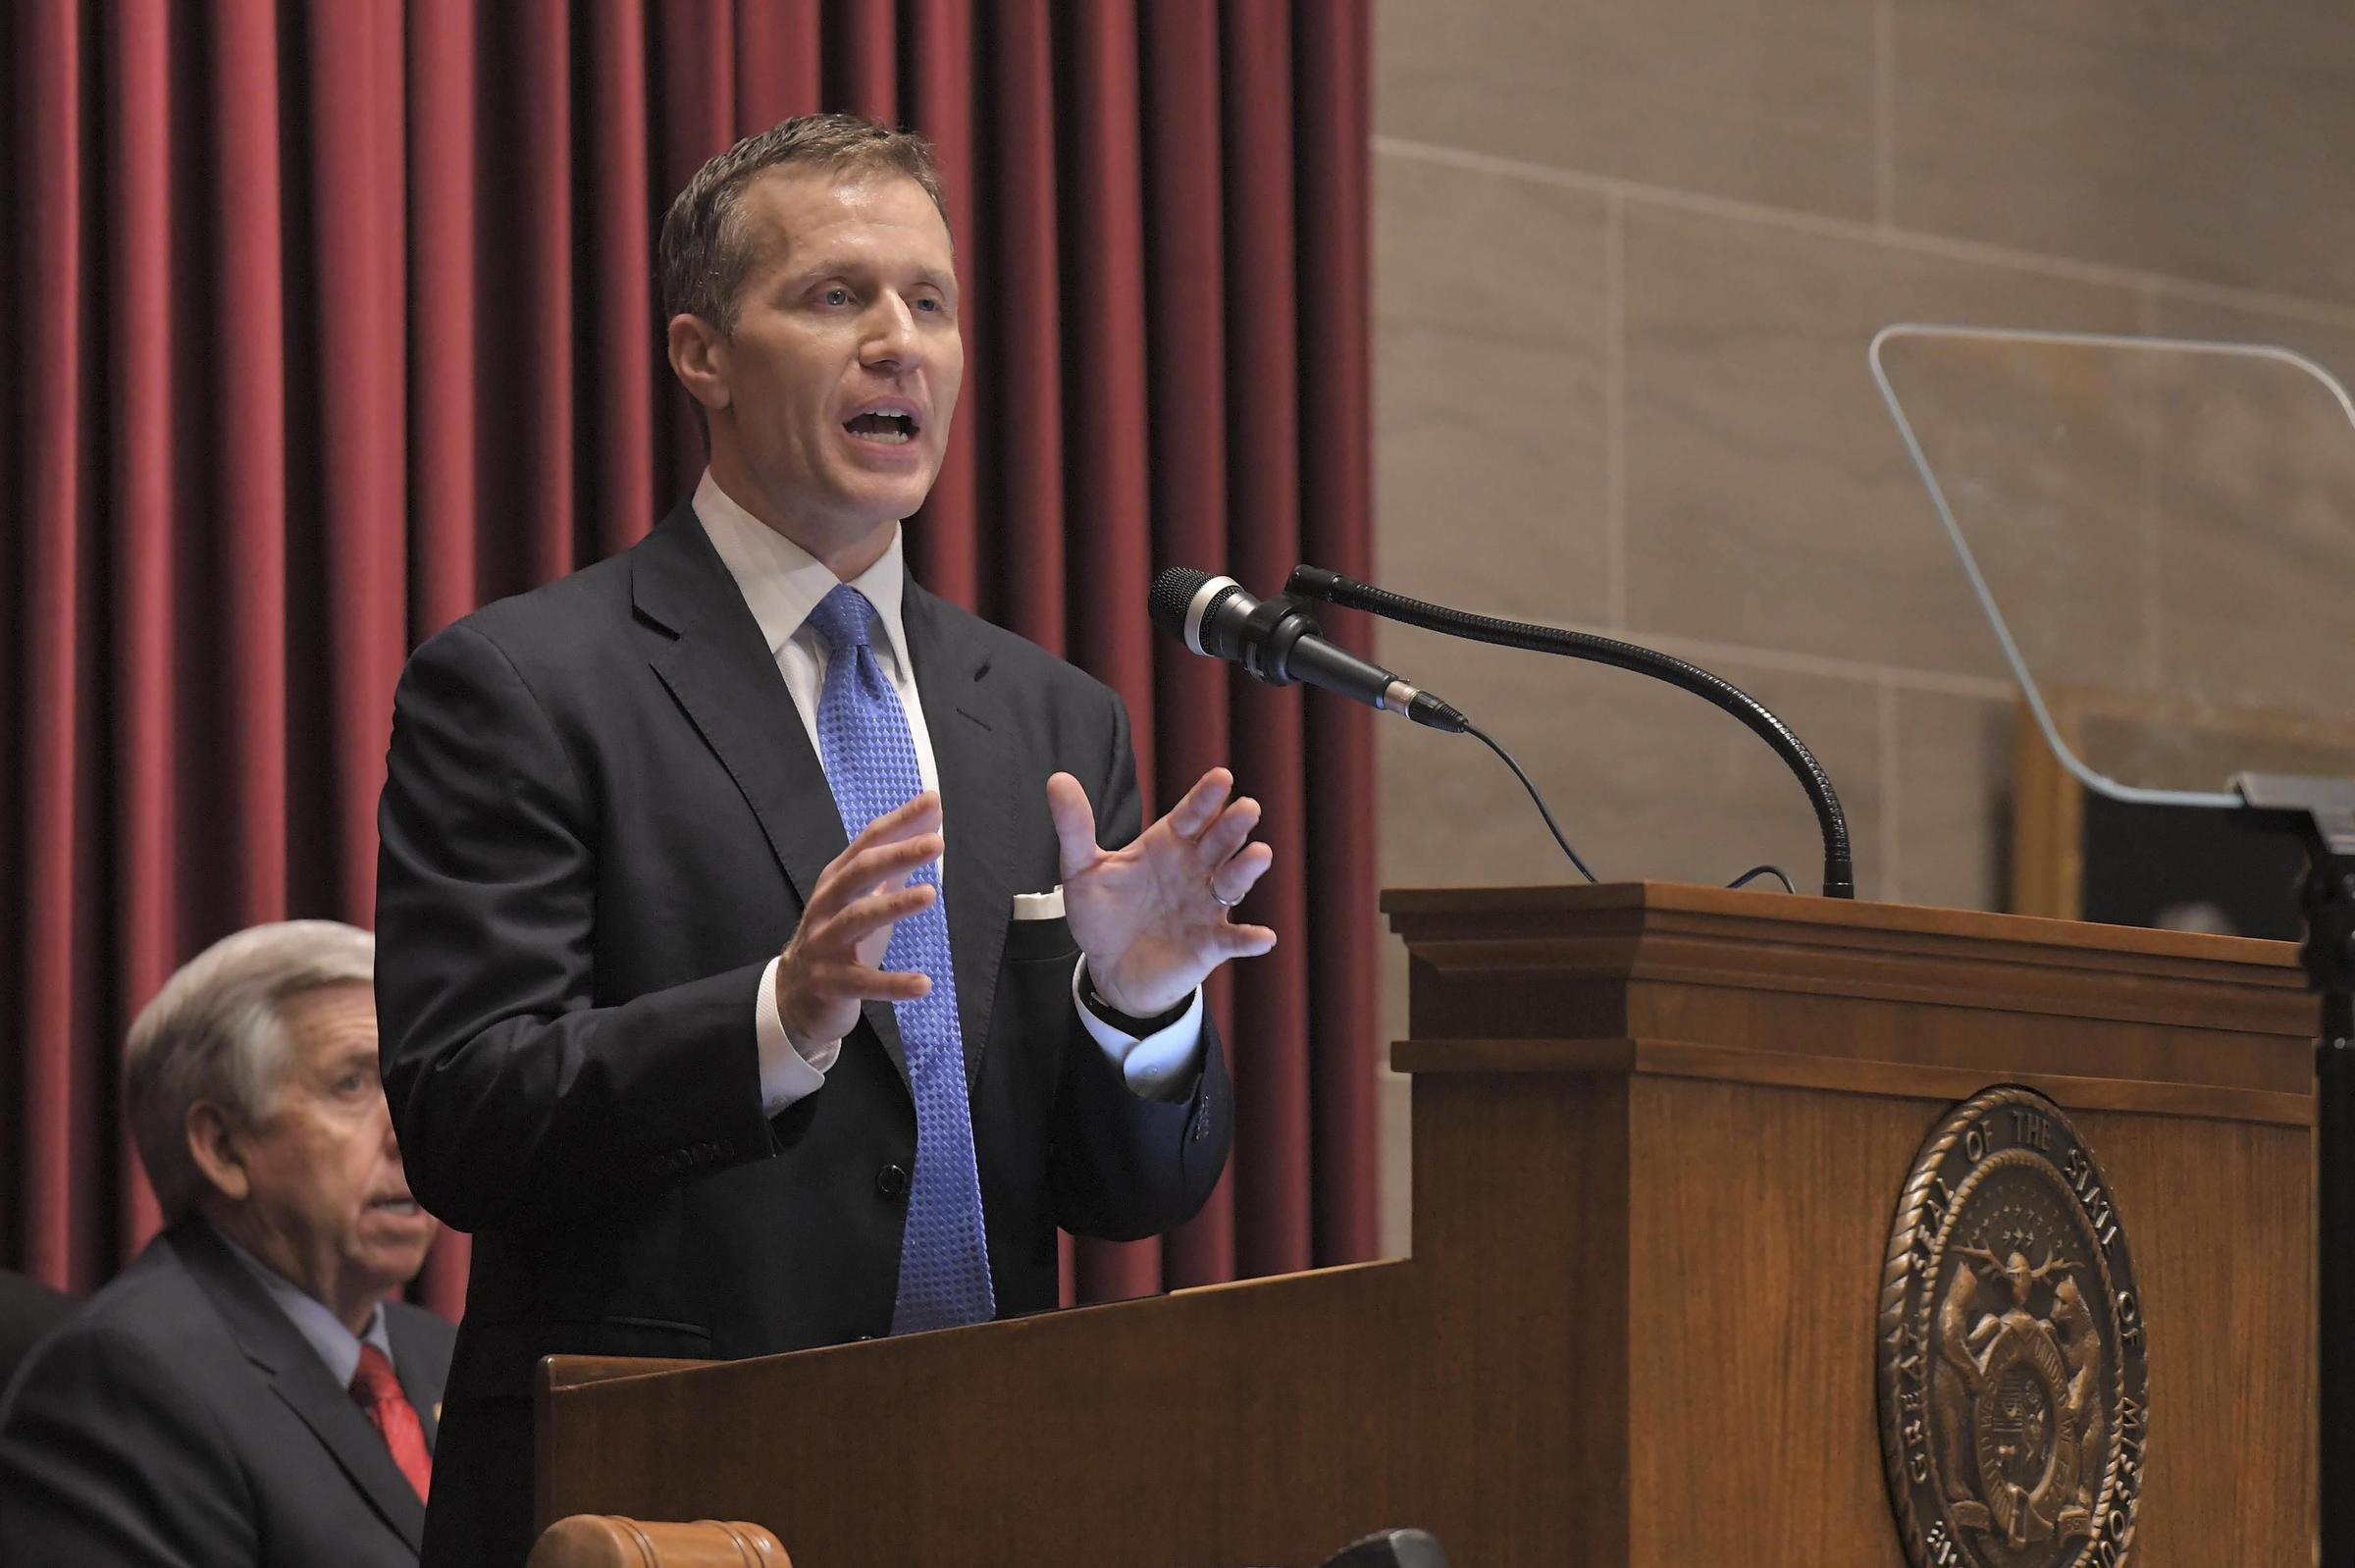 Governor Greitens Confirms Affair that Occurred in 2015